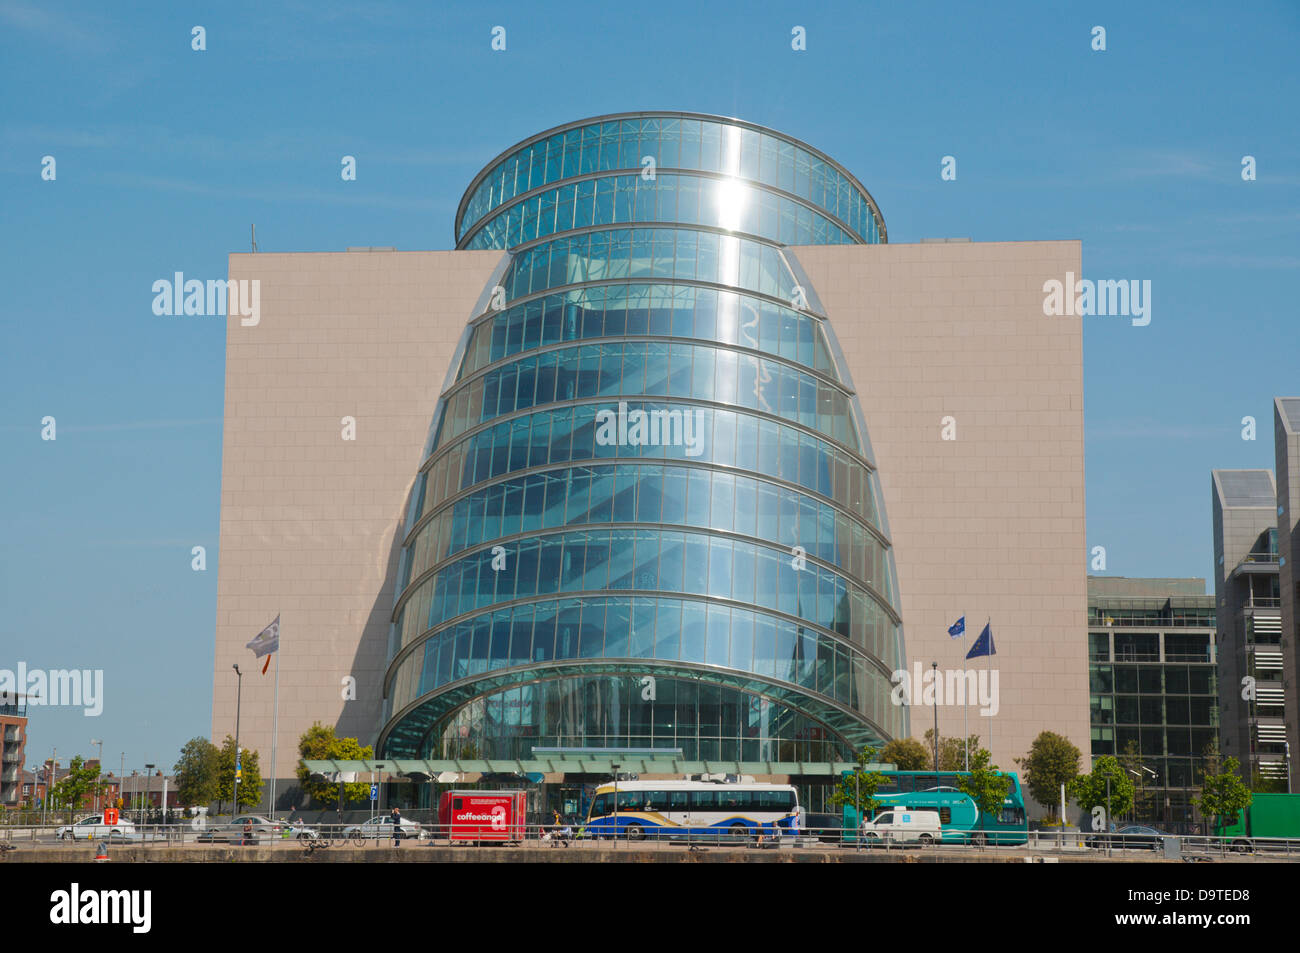 Convention centre Docklands former harbour area by River Liffey central Dublin Ireland Europe - Stock Image